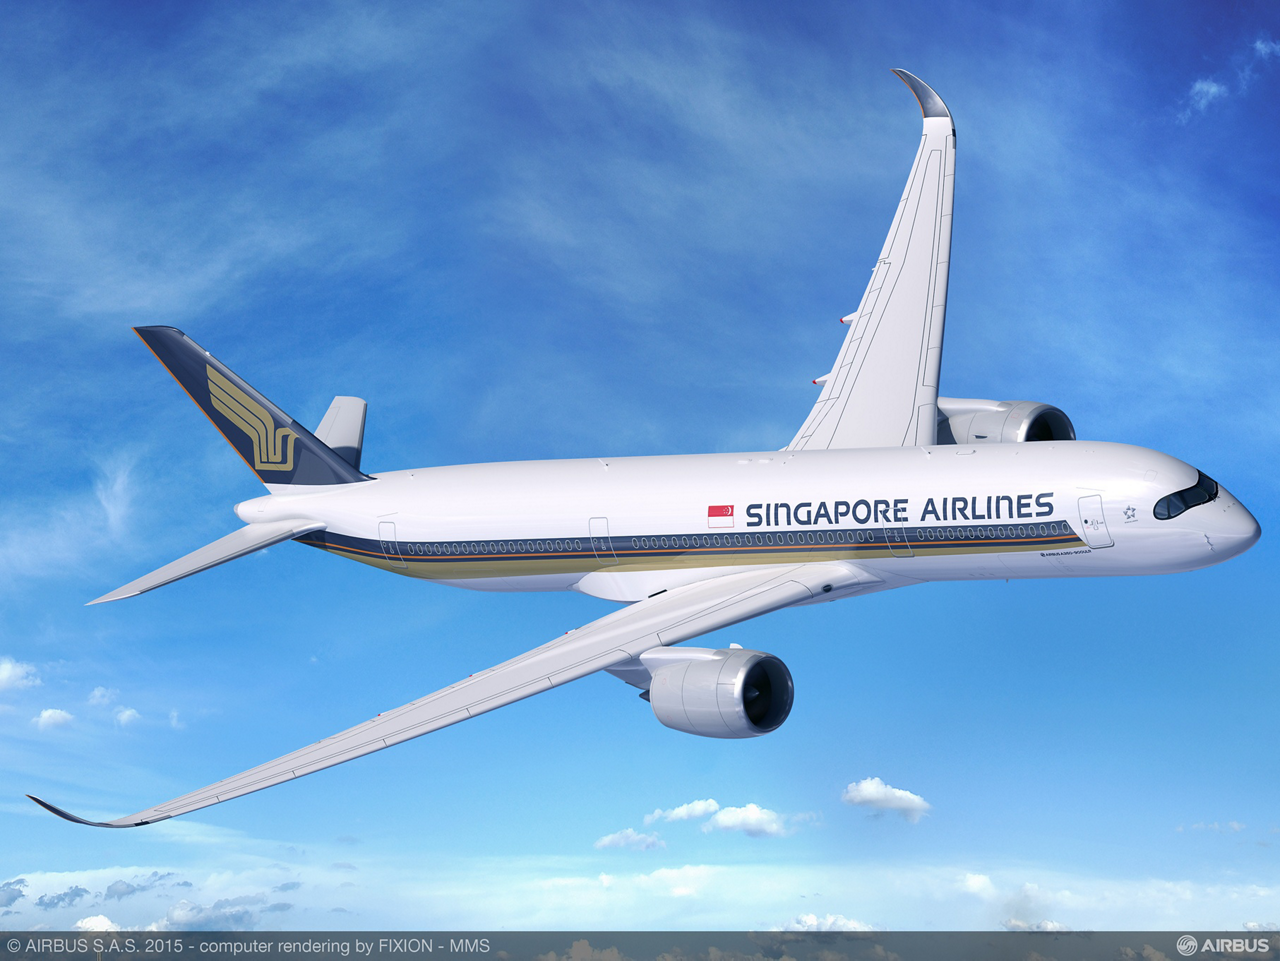 Singapore Airlines selected Airbus' newly launched A350-900 Ultra Long Range version, which includes a modified fuel system, increased maximum takeoff weight and aerodynamic improvements that will allow the jetliner to fly routes of up to 19 hours